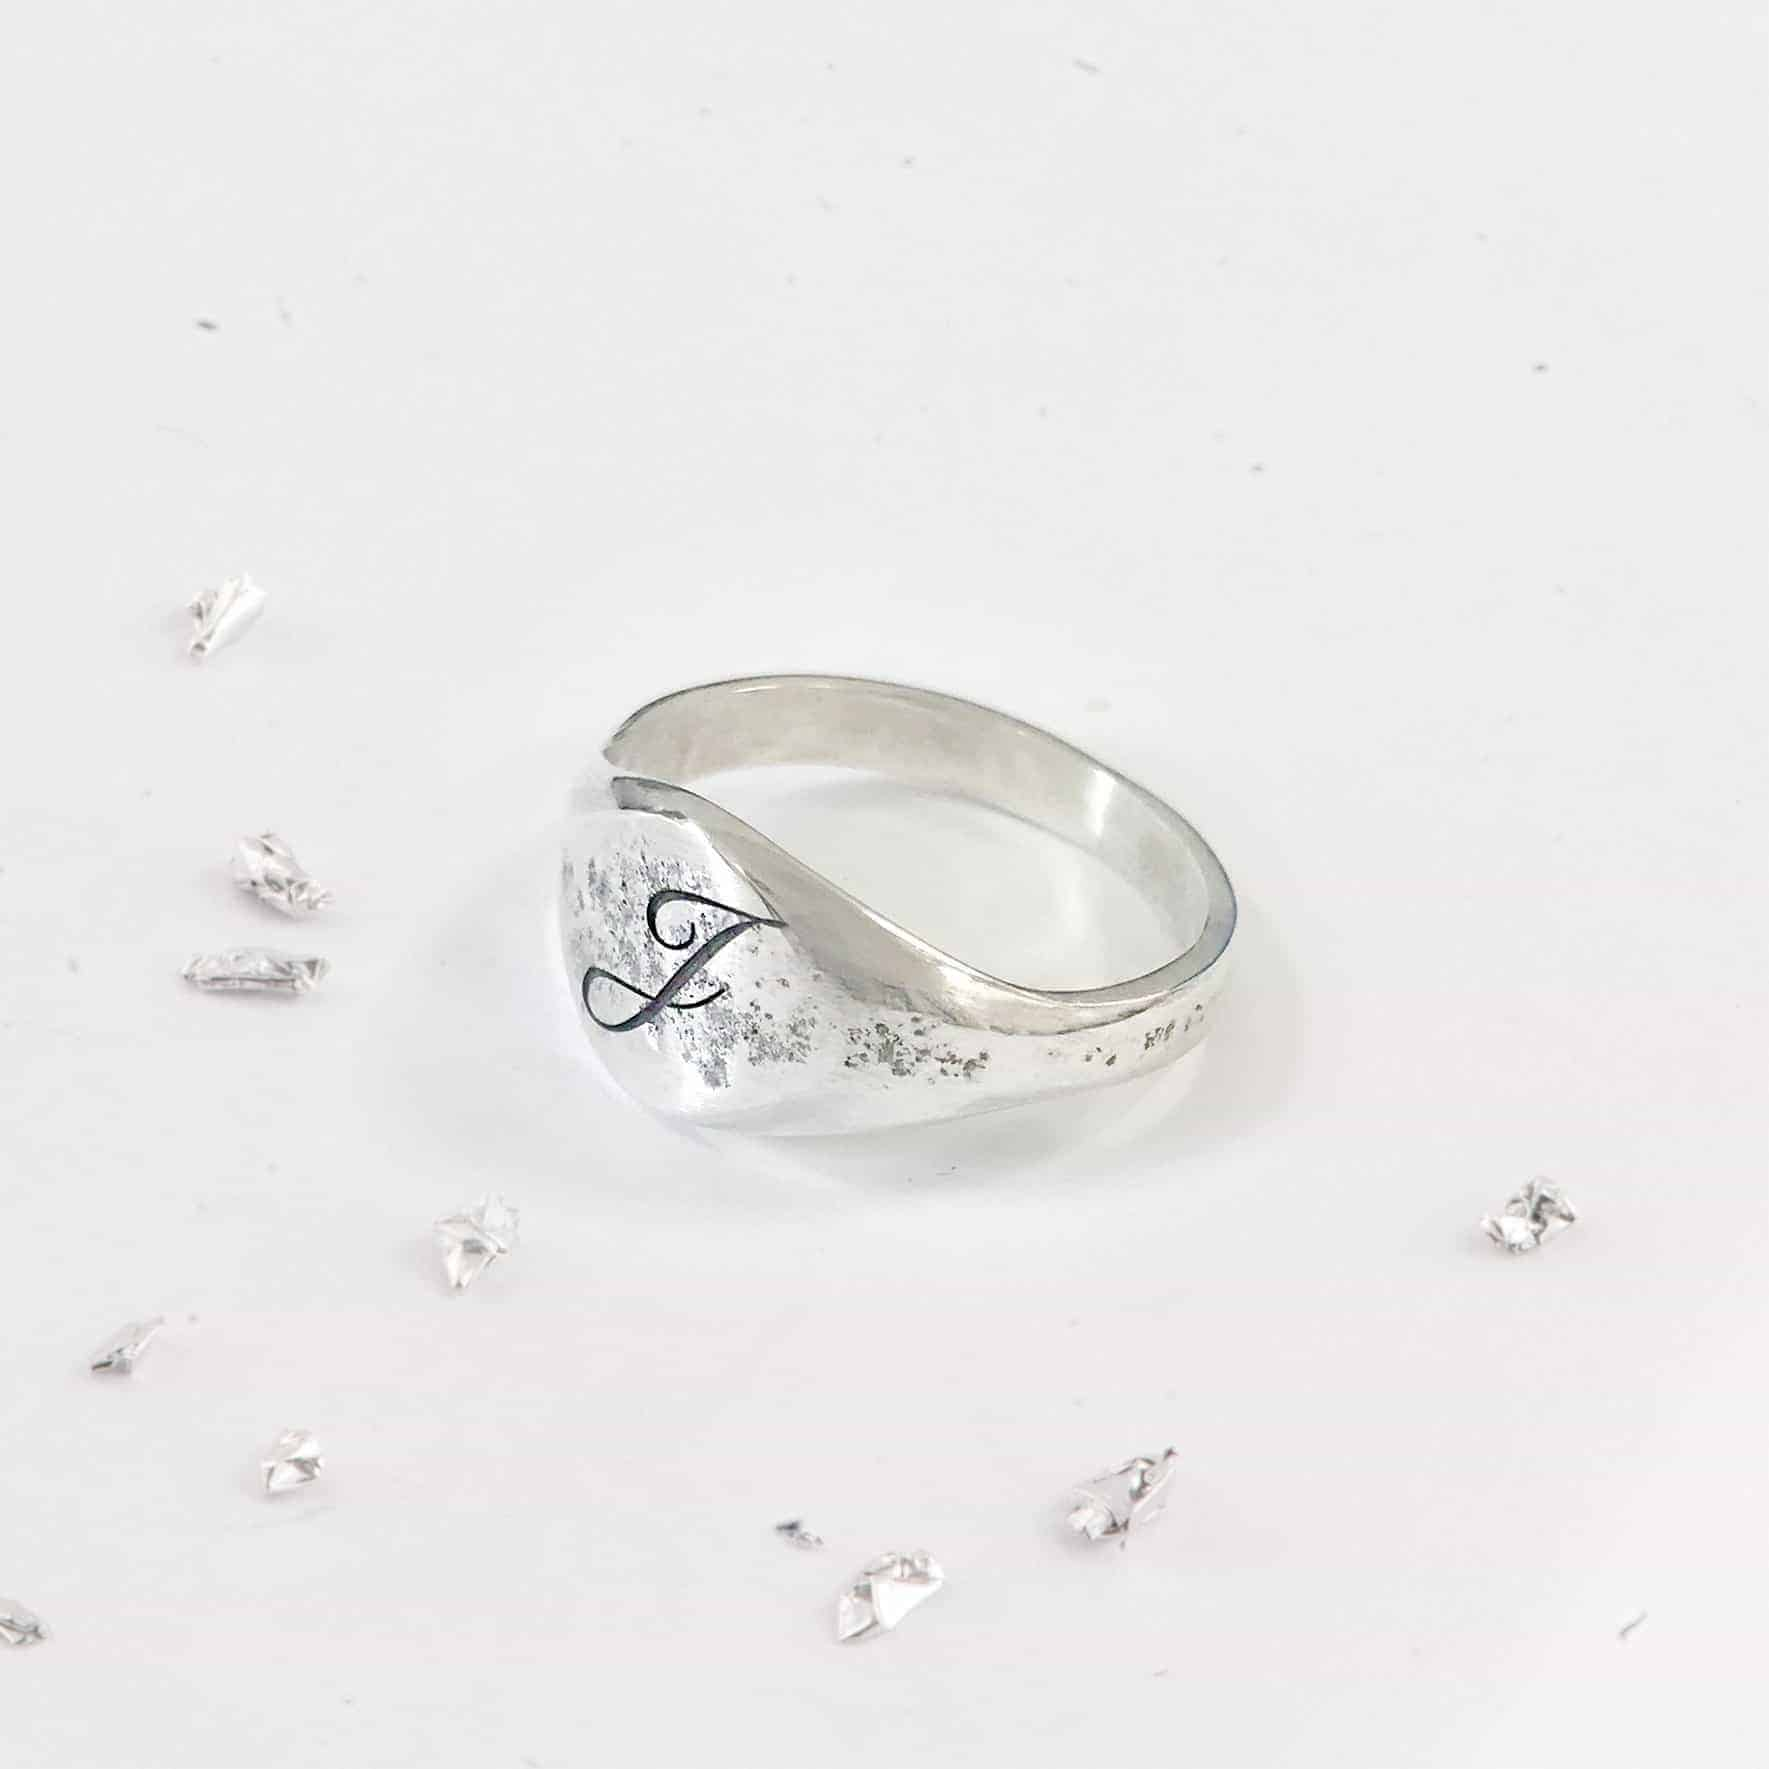 Ashes Silver Imprinted Unisex Signet Ring